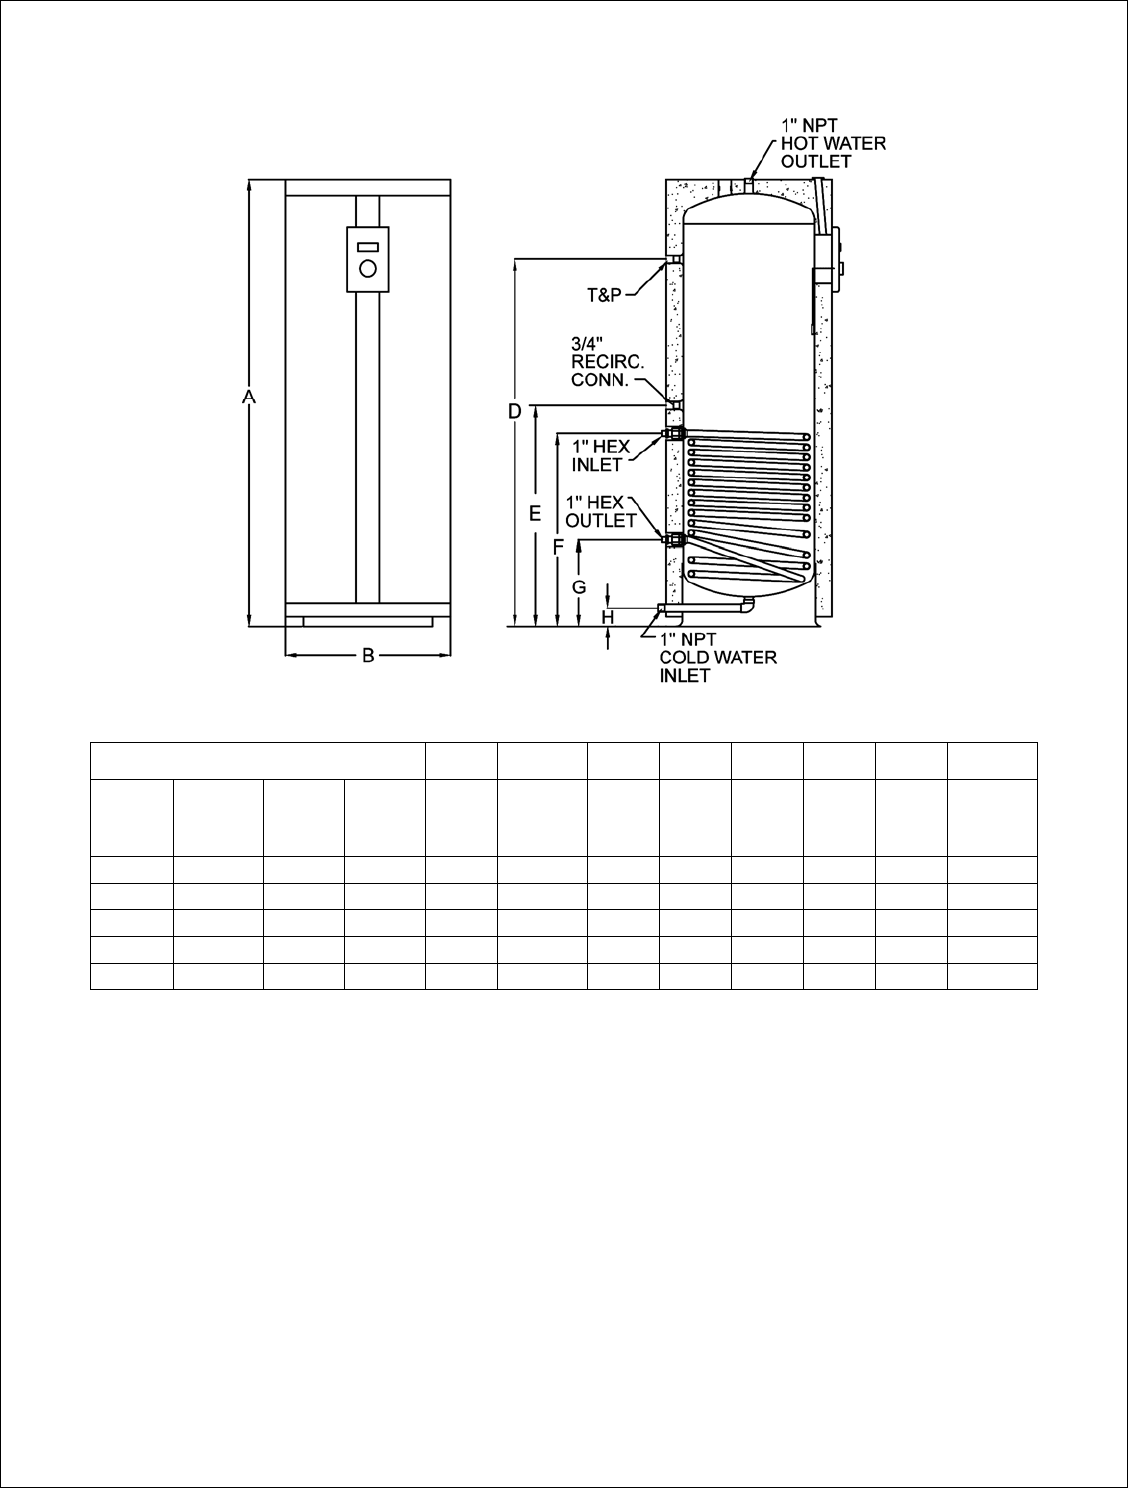 Lochinvar Water Heater Thermostat Wiring Diagram Gas Richmond Heaters Users Manual On